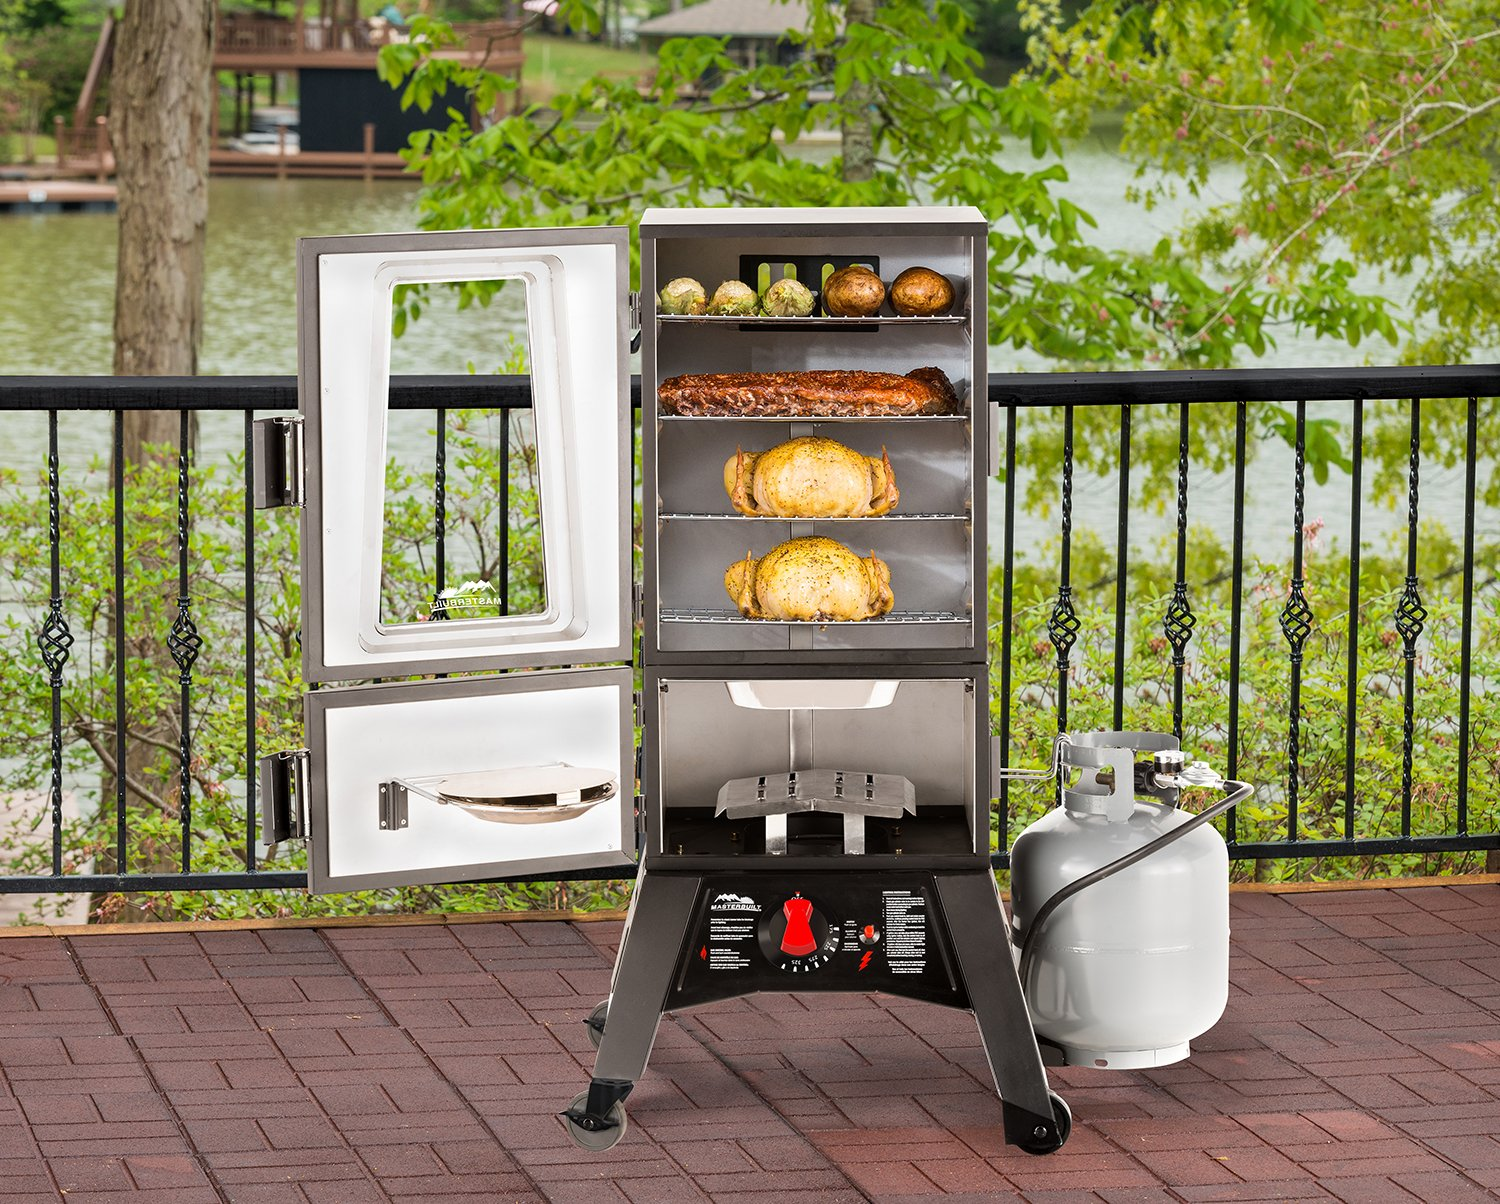 all bloggers den - Smoker Grill